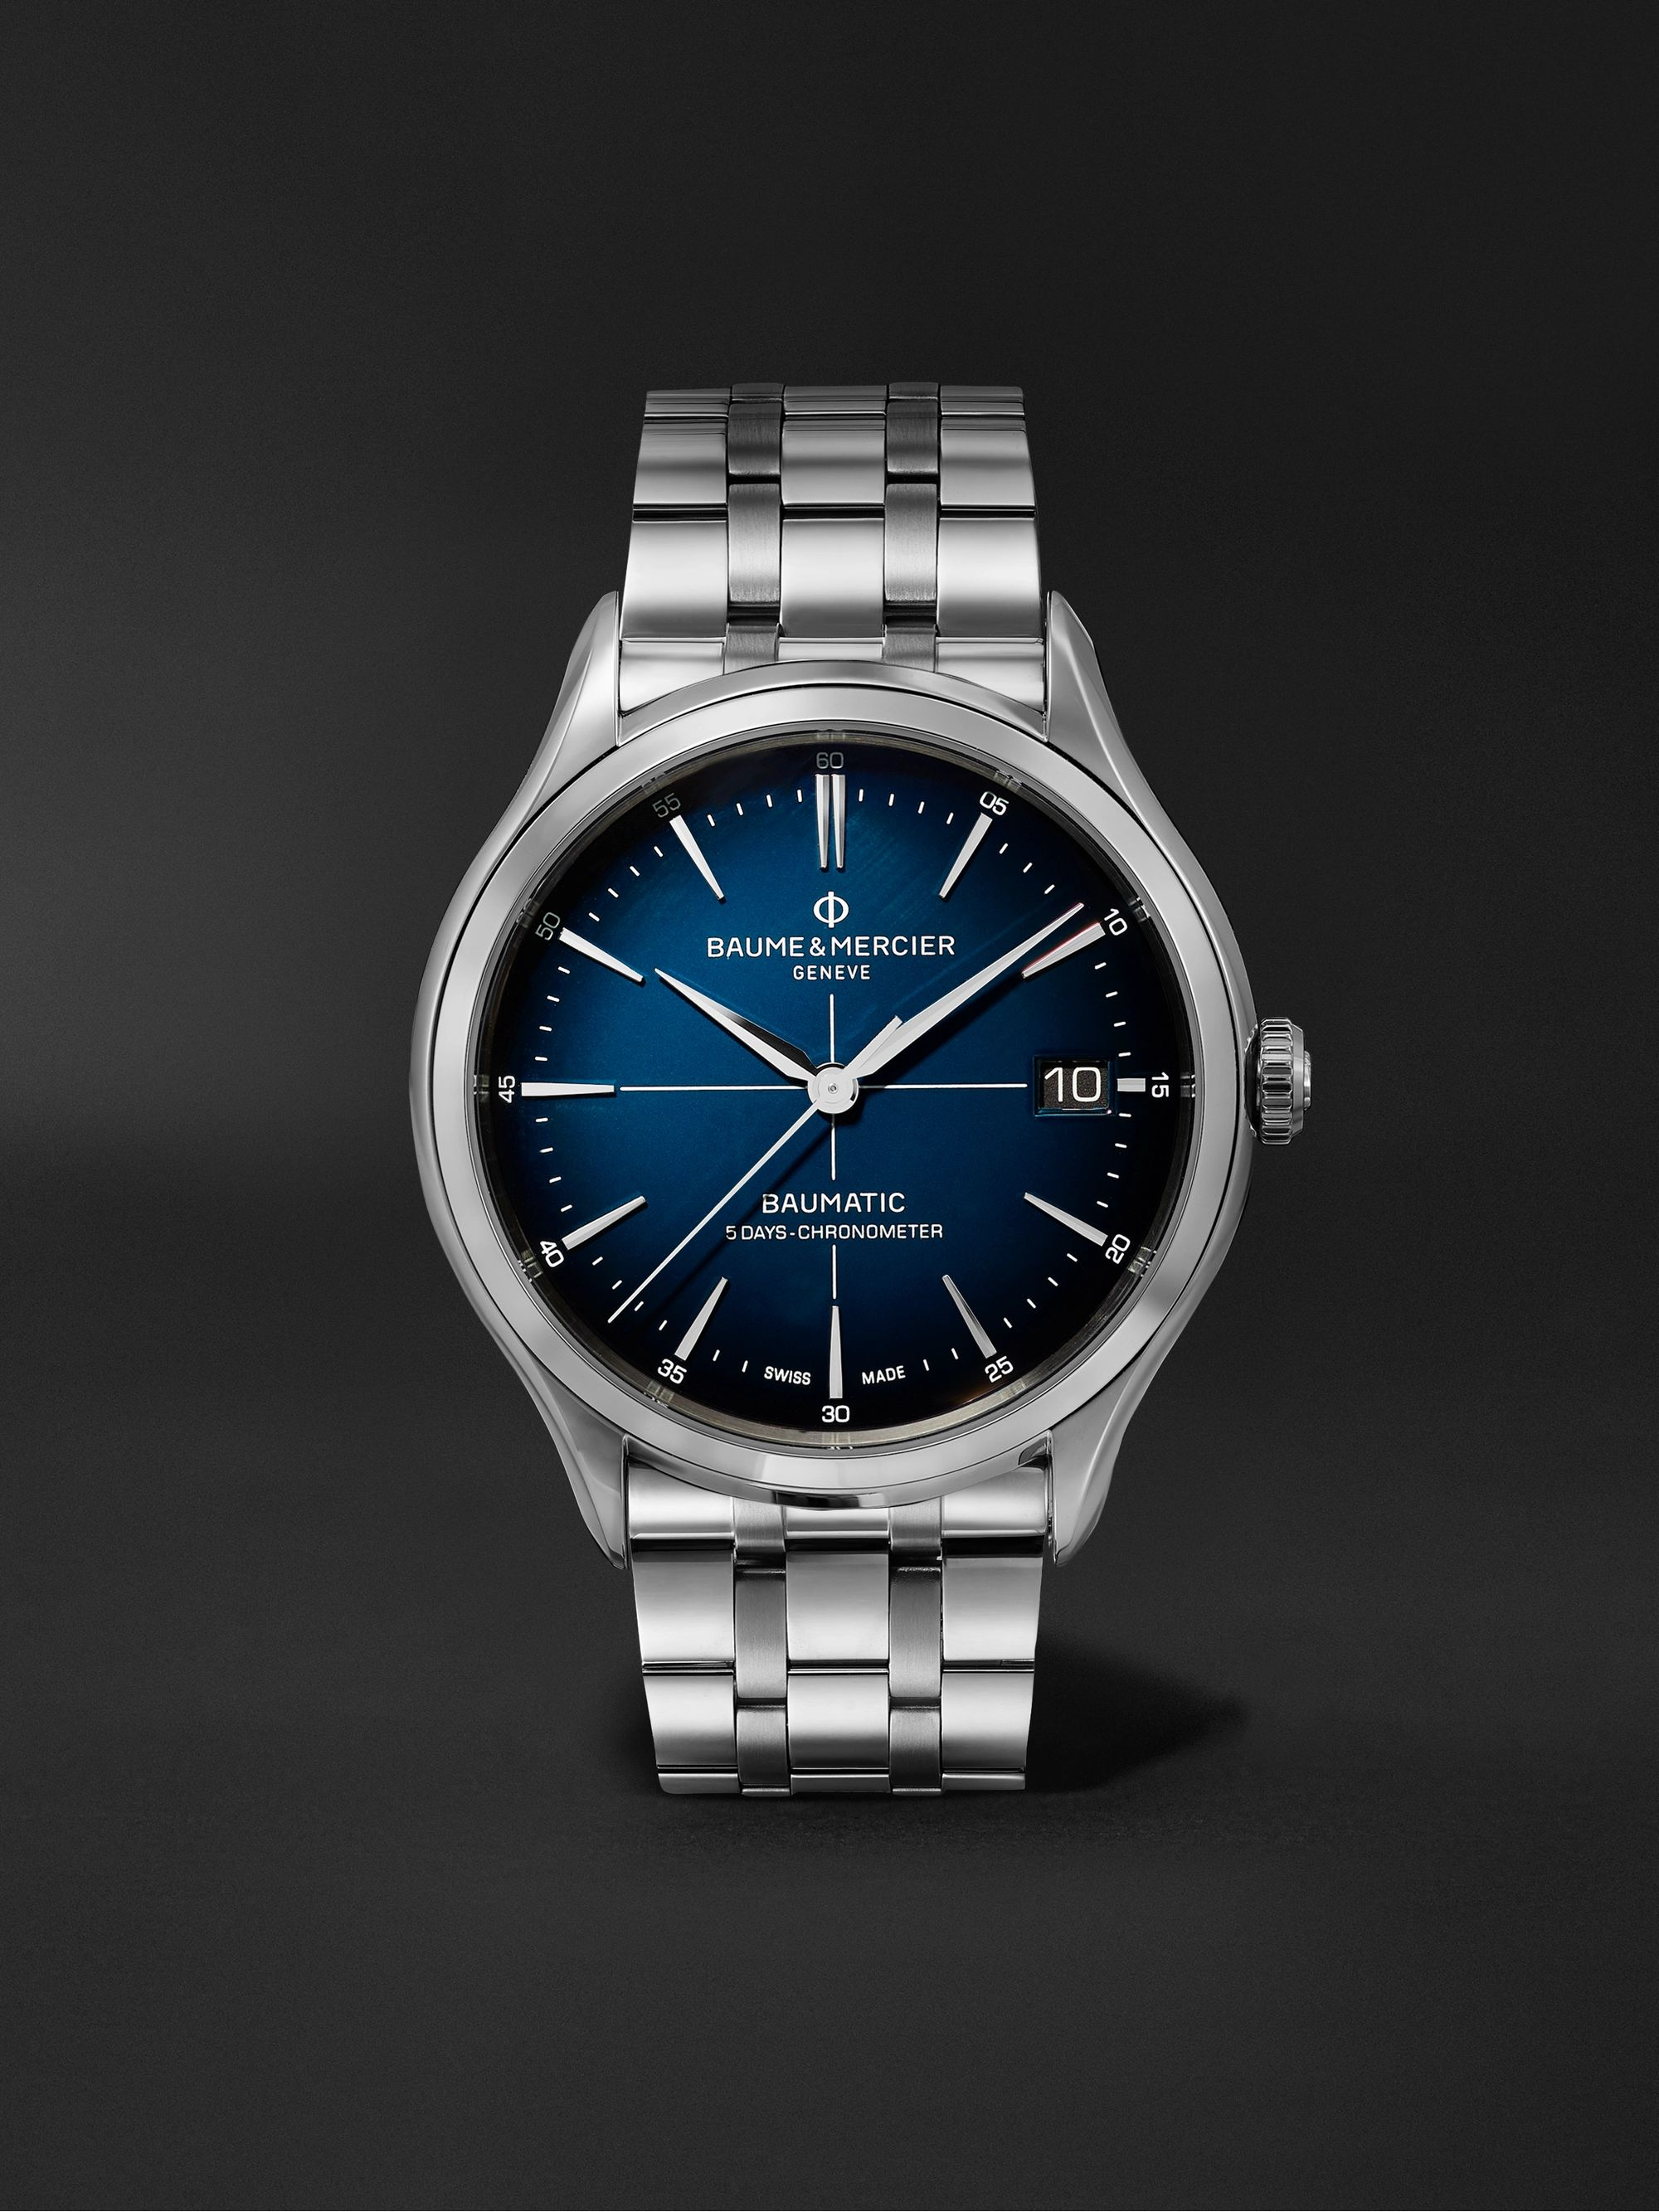 Blue Clifton Baumatic 10468 Automatic Chronometer 40mm Stainless